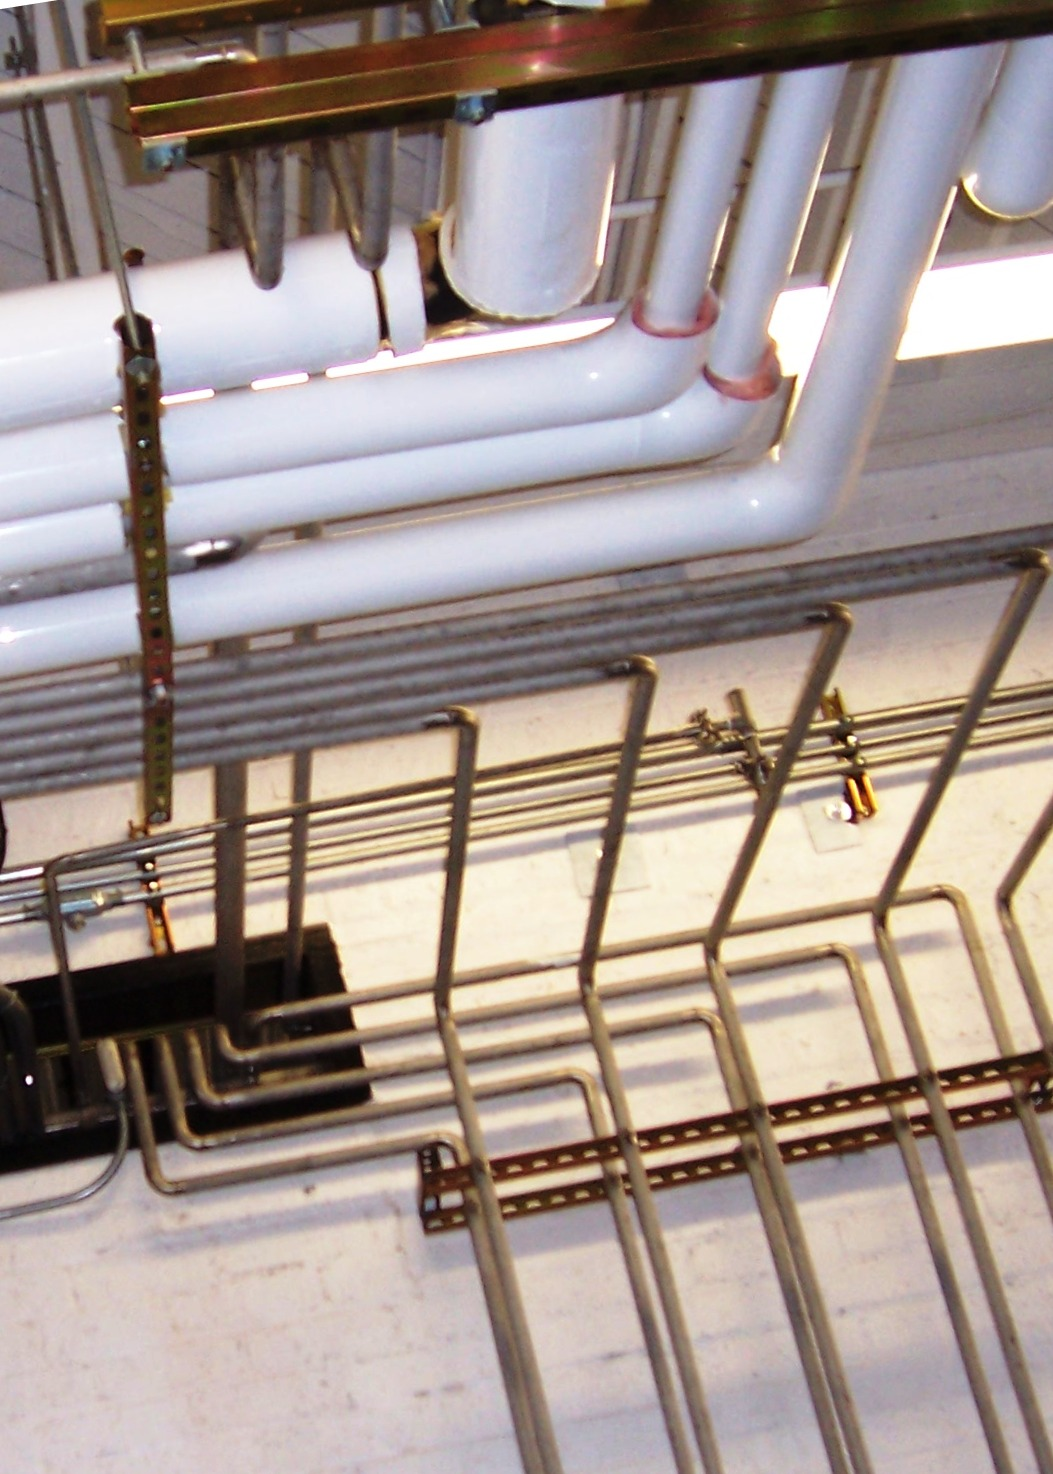 PVC and Stainless Steel Piping - Carson Valley Inc. - Stainless Steel Specialists